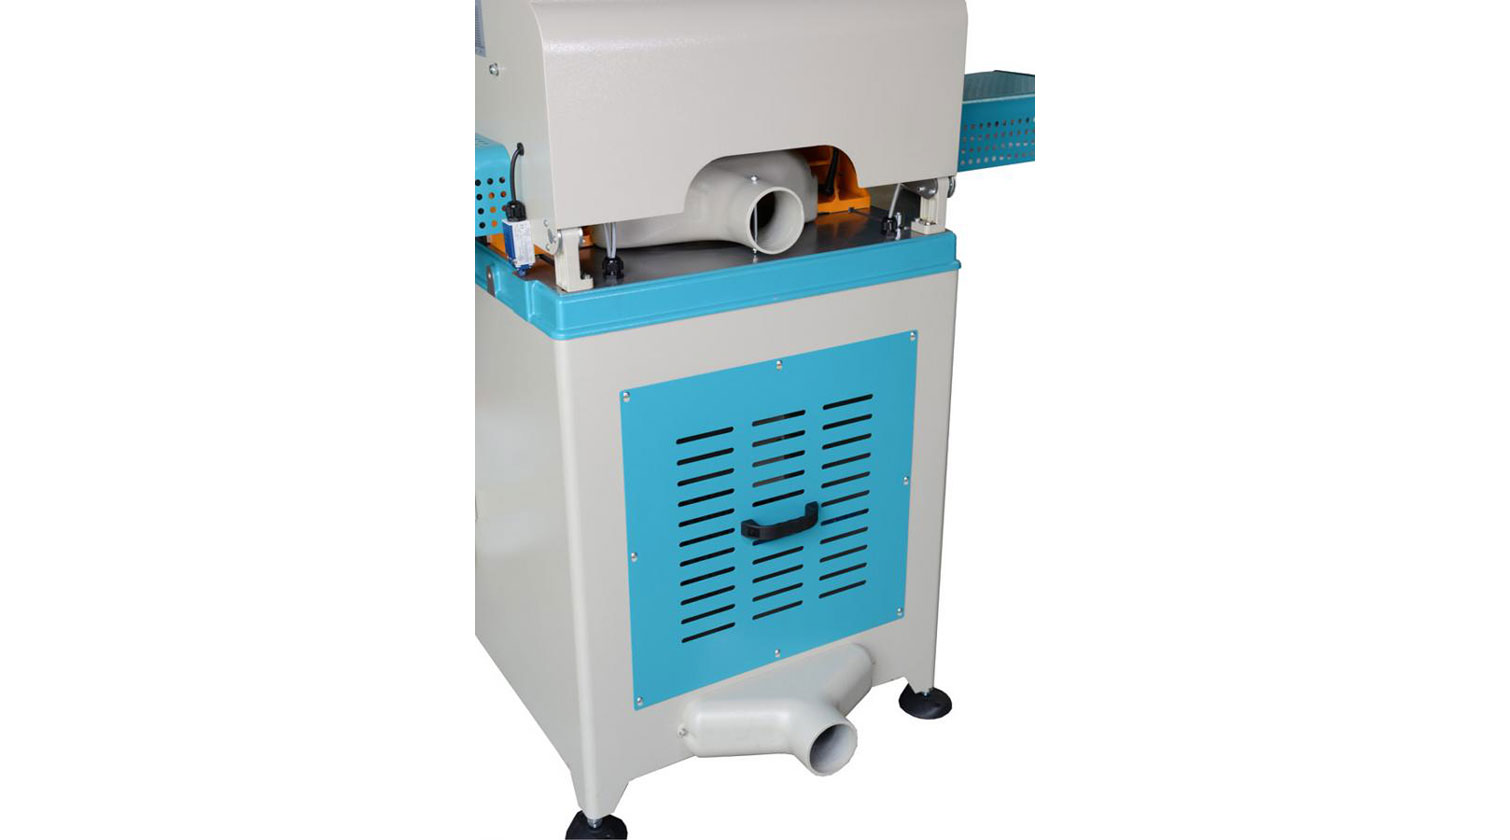 INT aluminum up cut saw Yilmaz ACK 420 dust and chips outlets